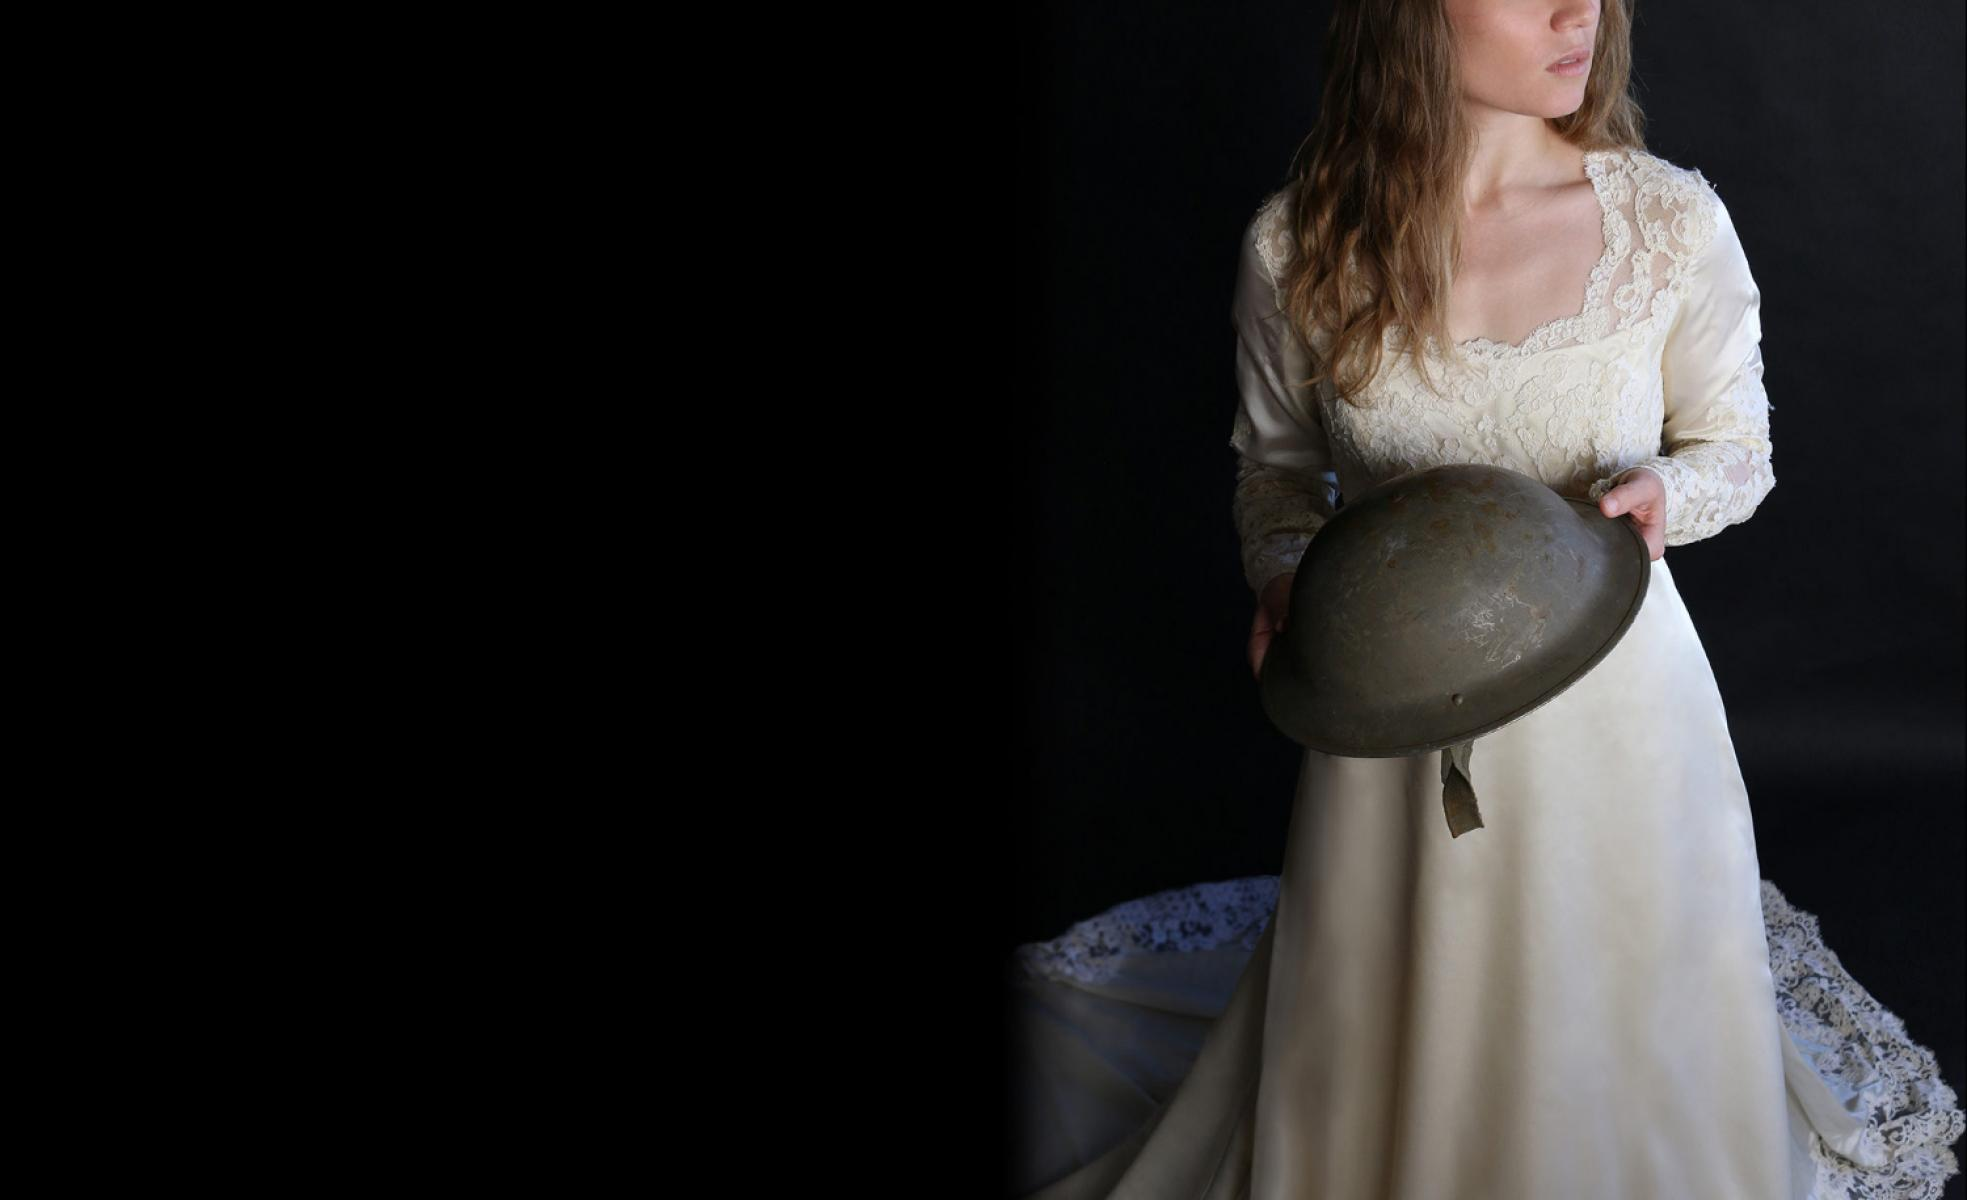 FIRST FOLIO THEATRE PRESENTS MARY'S WEDDING FROM MARCH 28 – APRIL 29